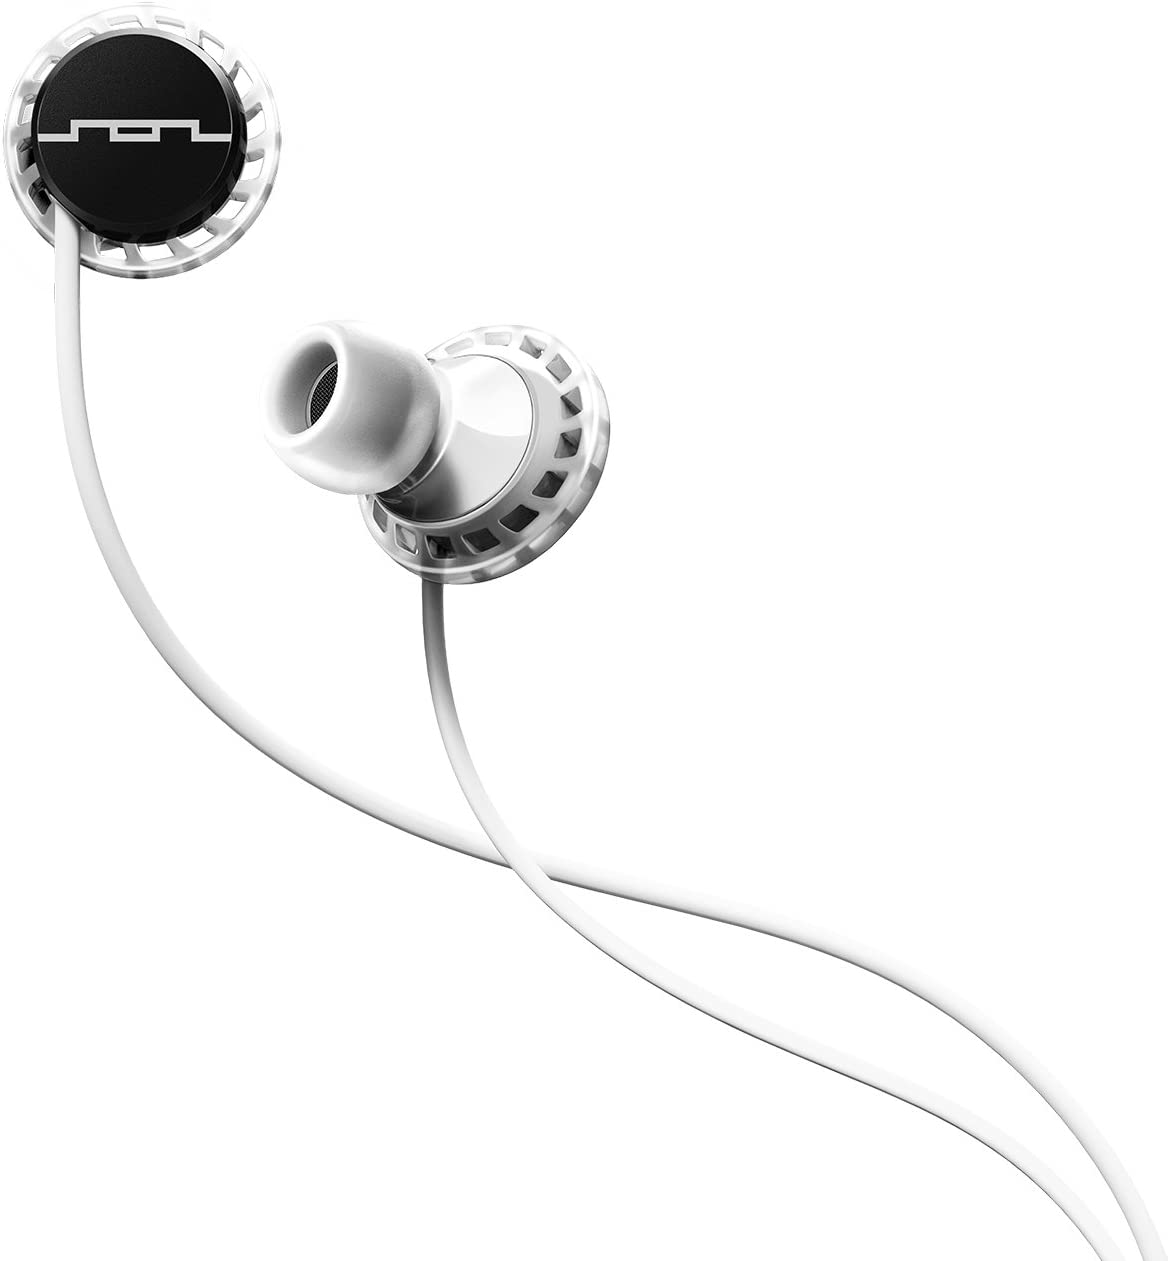 SOL REPUBLIC Relays Sport Wired 3-Button In-Ear Headphones, Apple Compatible, Secure Fit For Workouts, Won't Fall Out, In-Ear Noise Isolation, 4 Ear Tip Sizes, Great For Calls, 1151-41 WhiteBlack